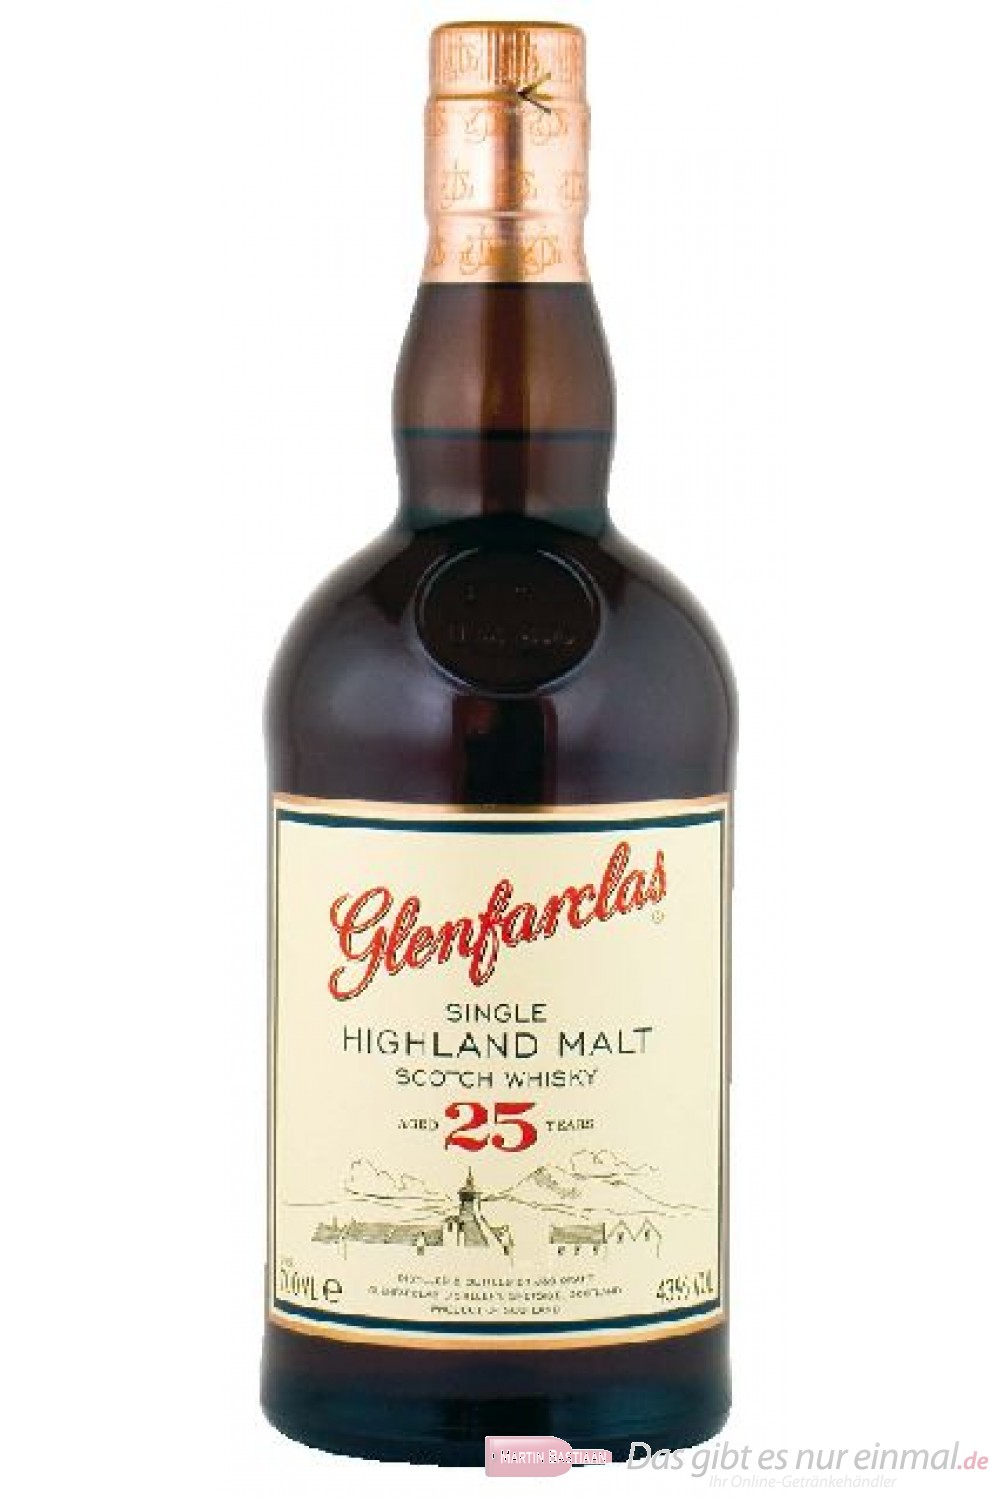 Glenfarclas 25 Years Single Highland Malt Scotch Whisky 43% 0,7l Flasche